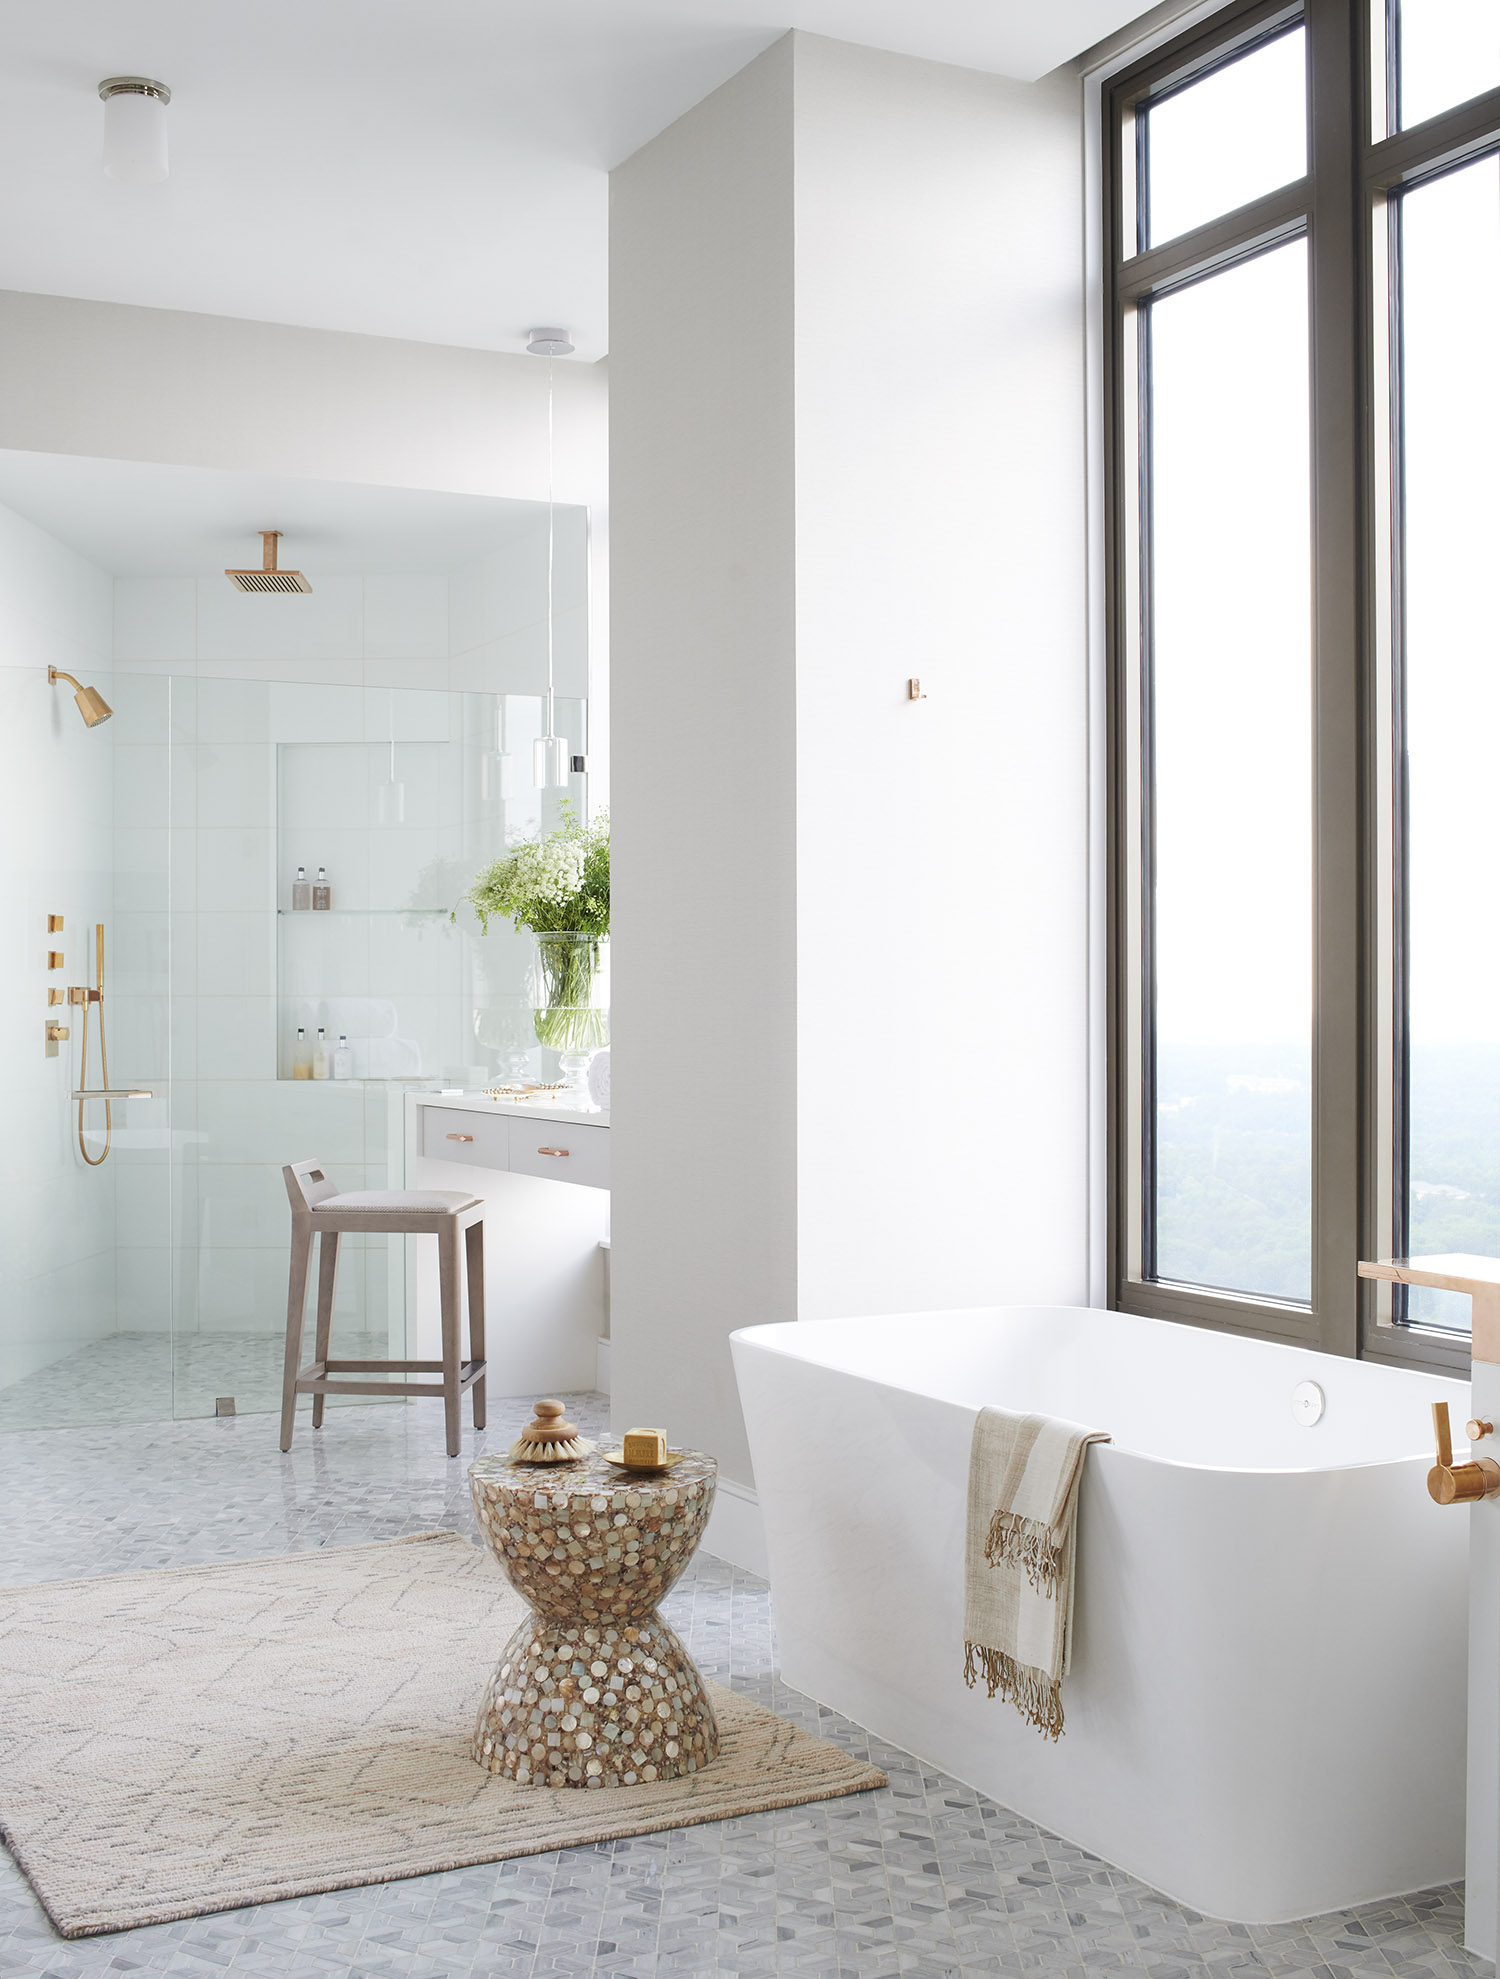 Spa like bathroom with a view features an intricate marble mosaic tile floor and unexpected rose gold fixtures.